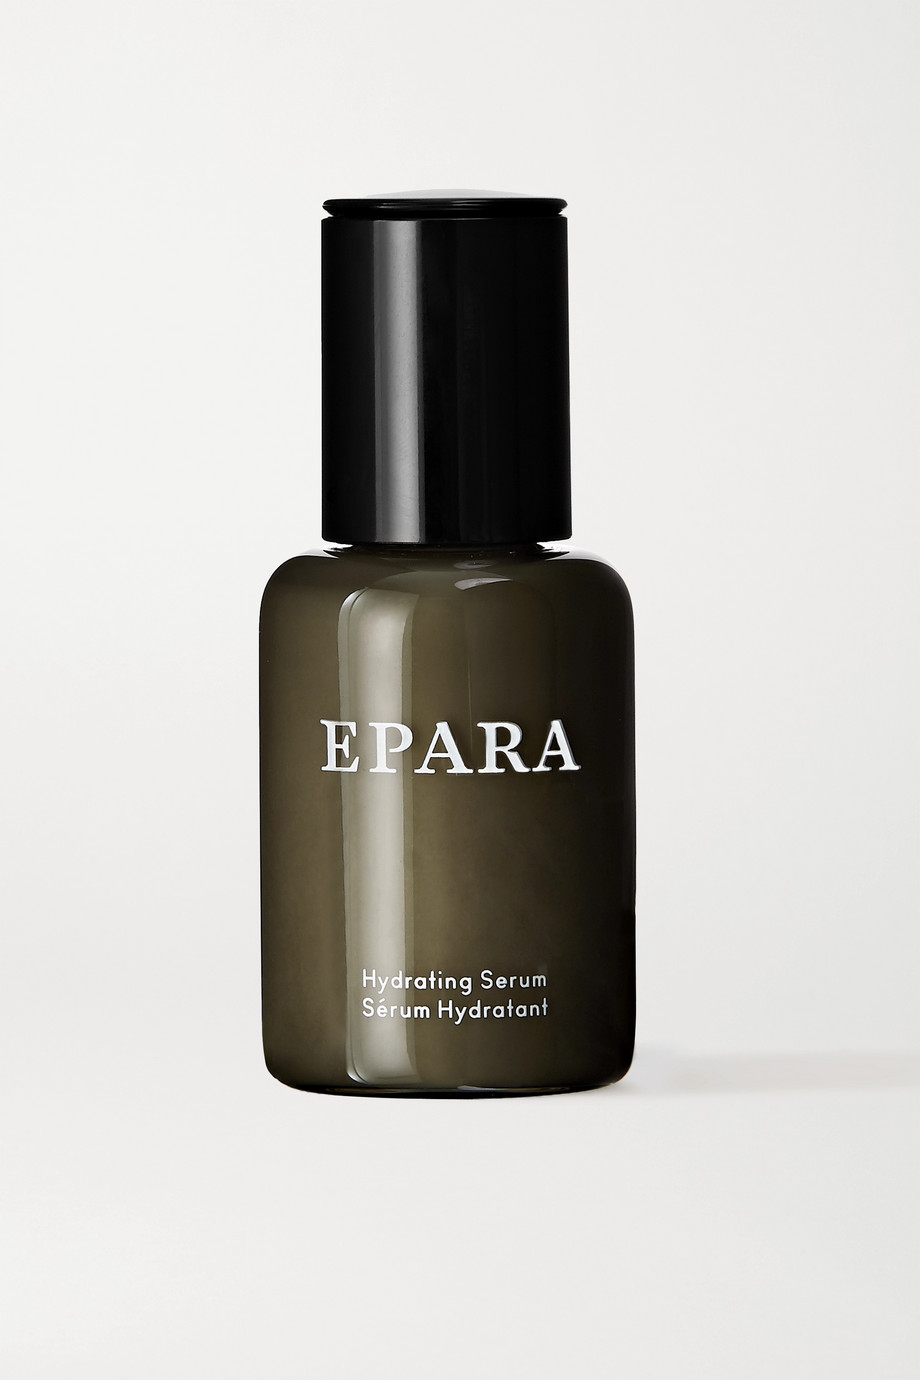 Epara Hydrating Serum, 30 ml – Serum